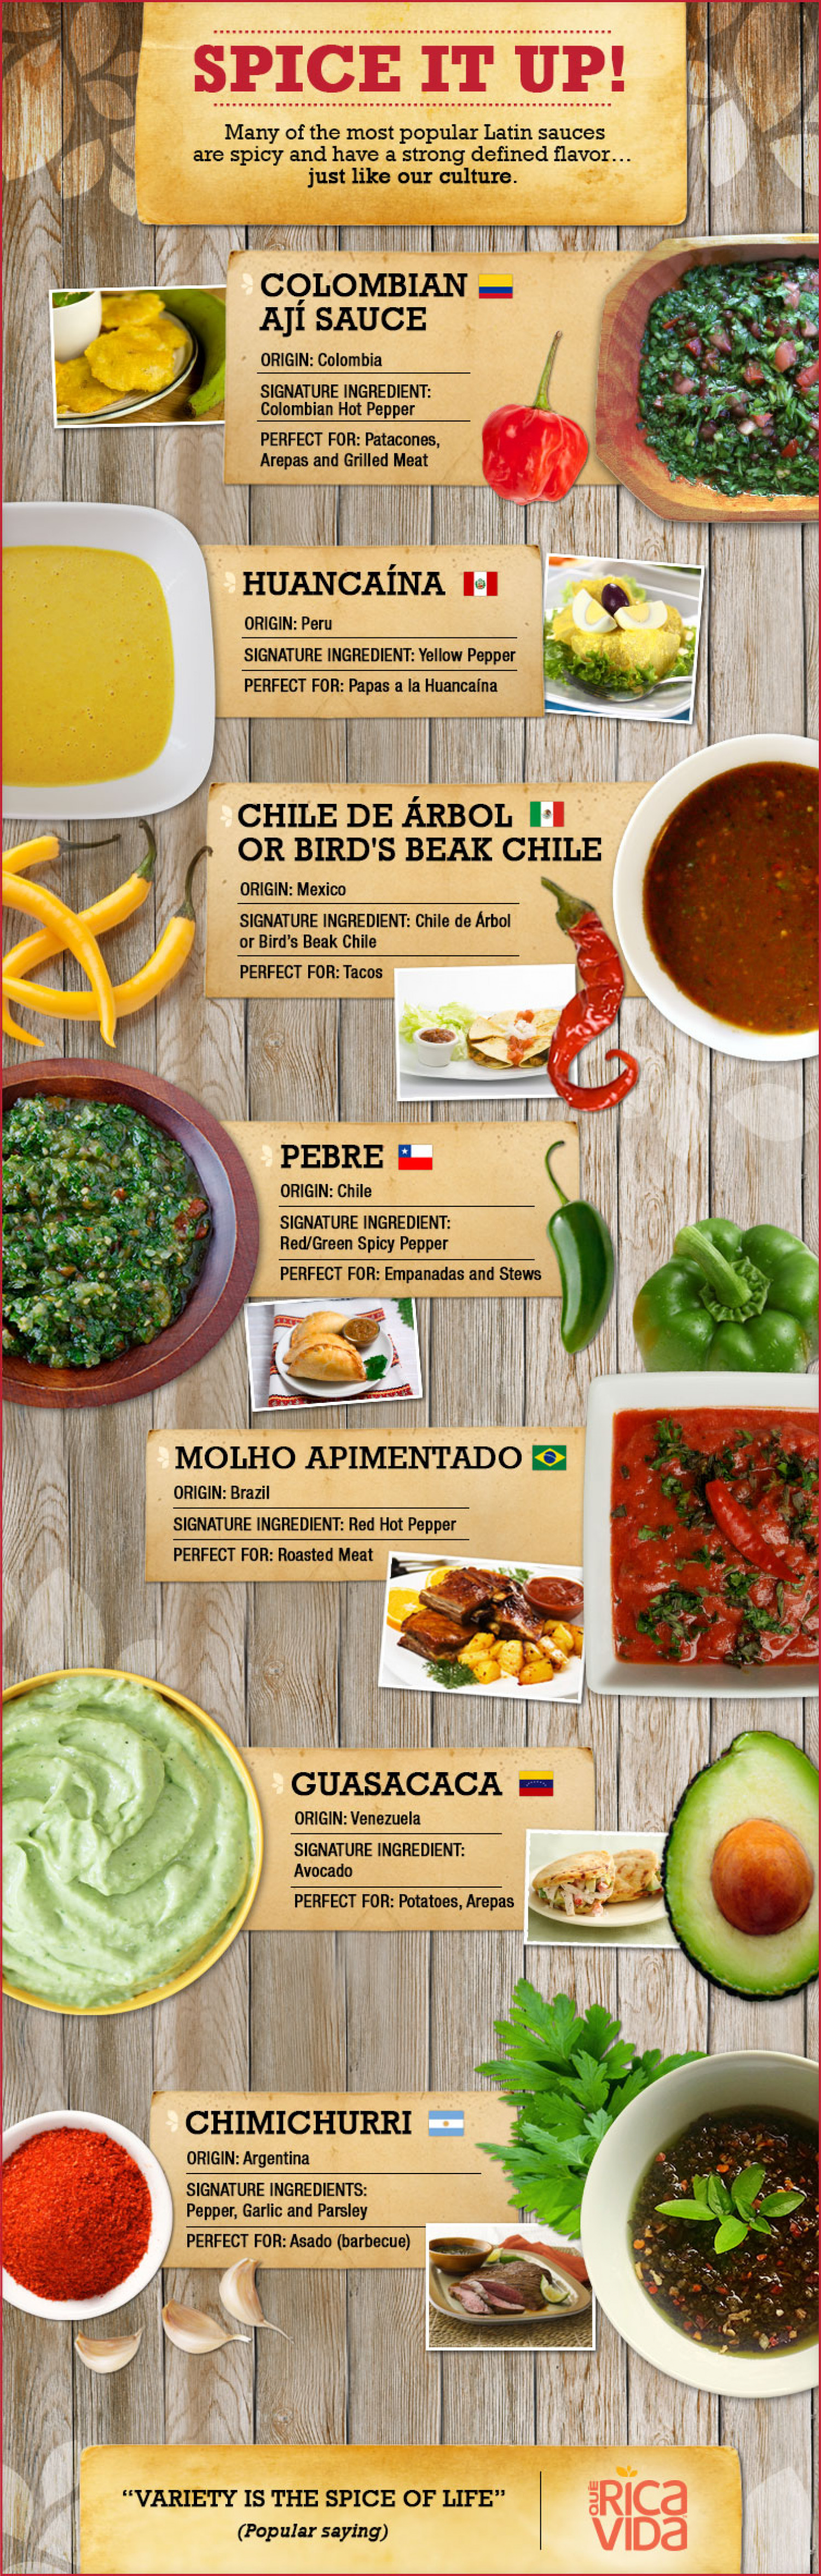 Sauce and Pepper: 7 of our Favorite Latino Sauces Infographic